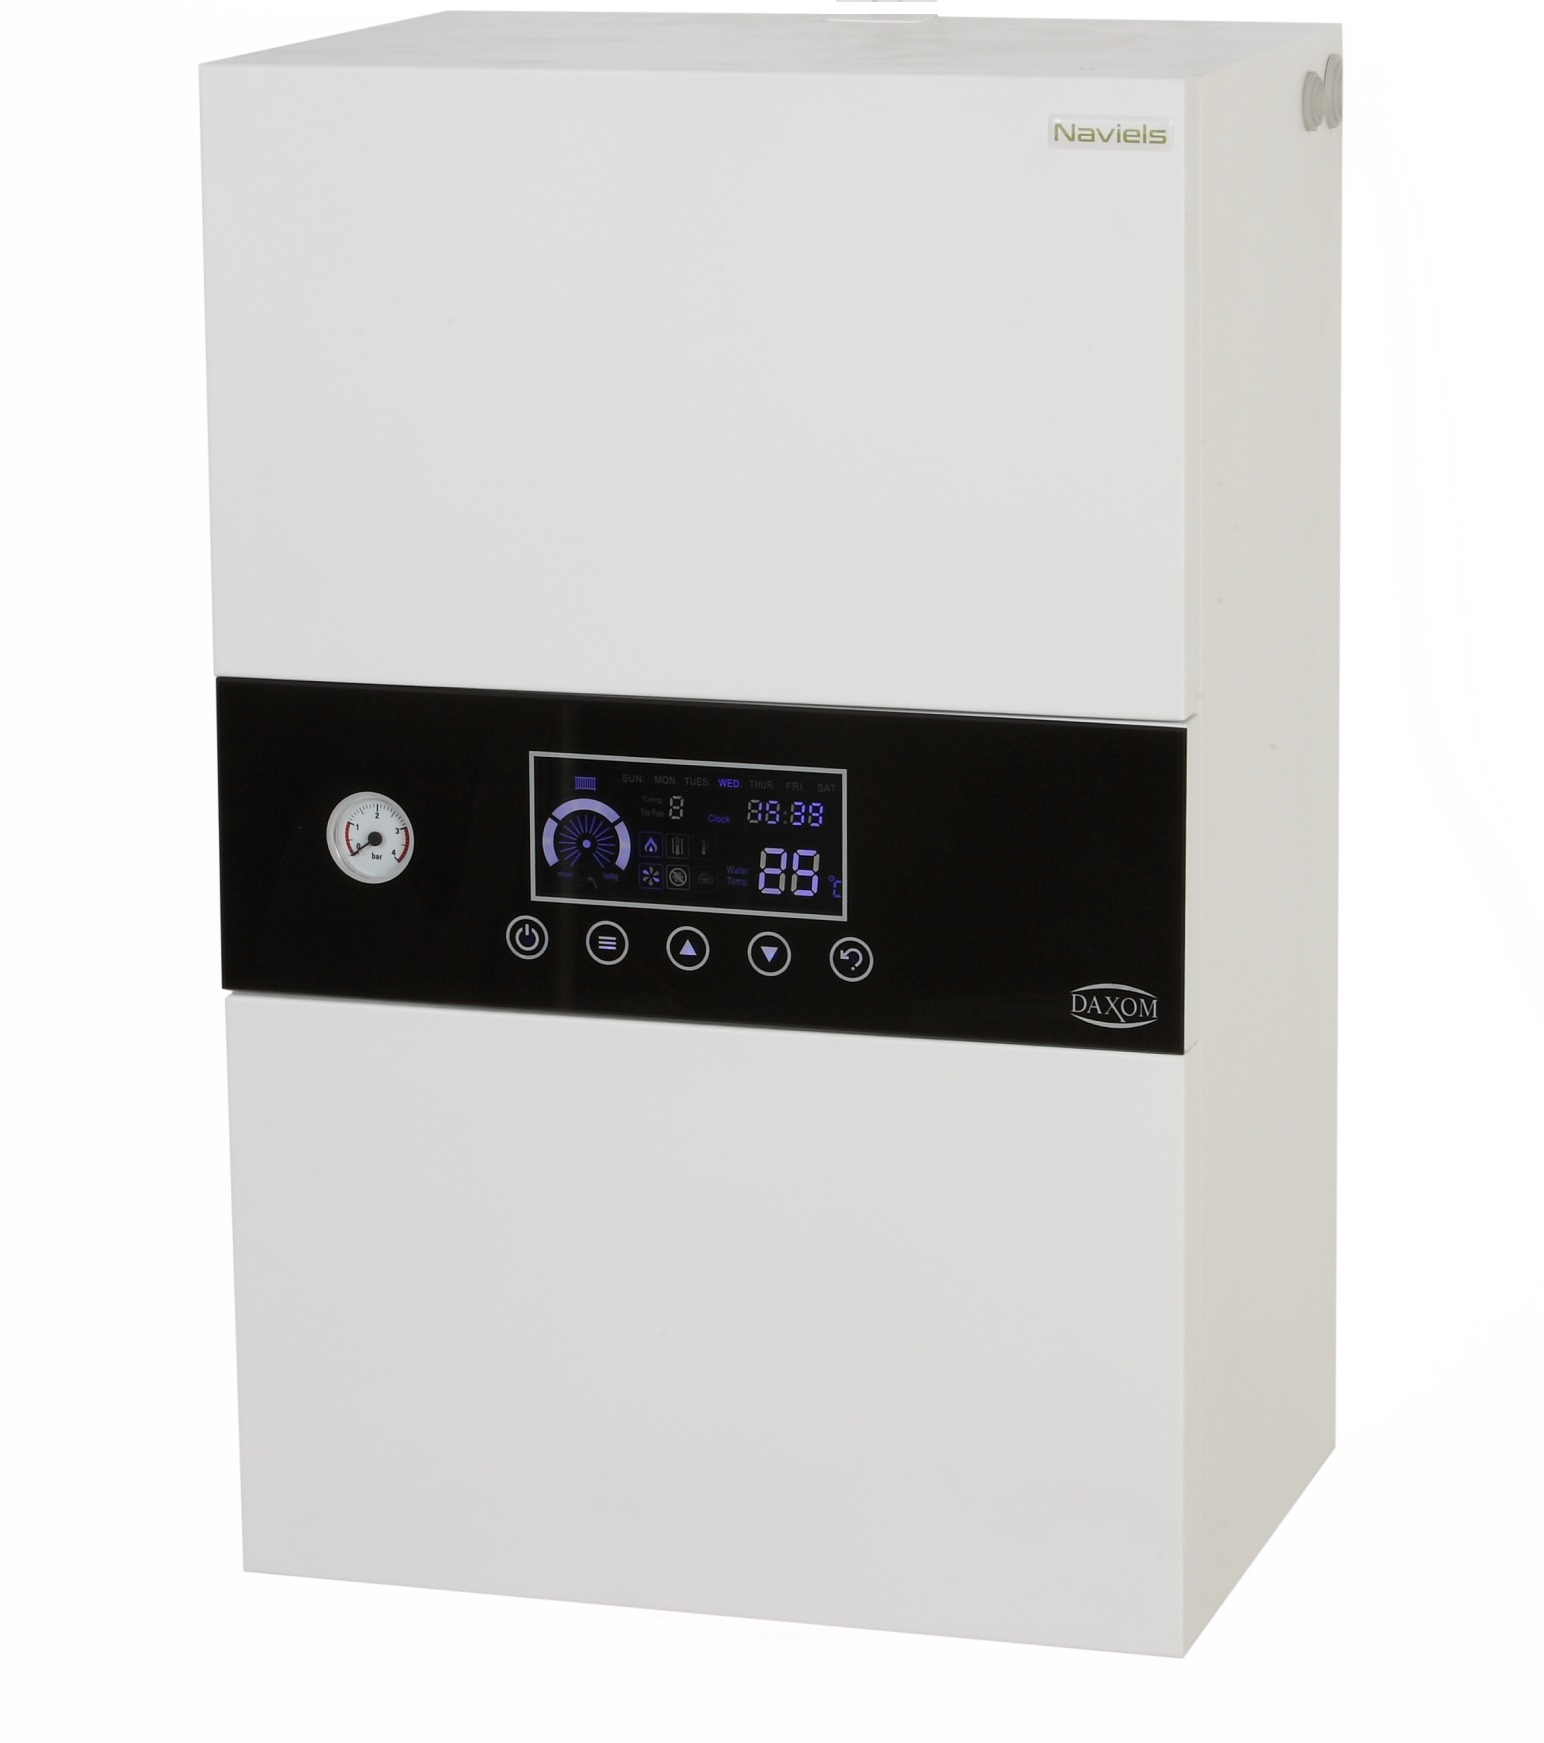 Wall hung electric boiler for home heating 20 kW 380 Volt - Coowor.com